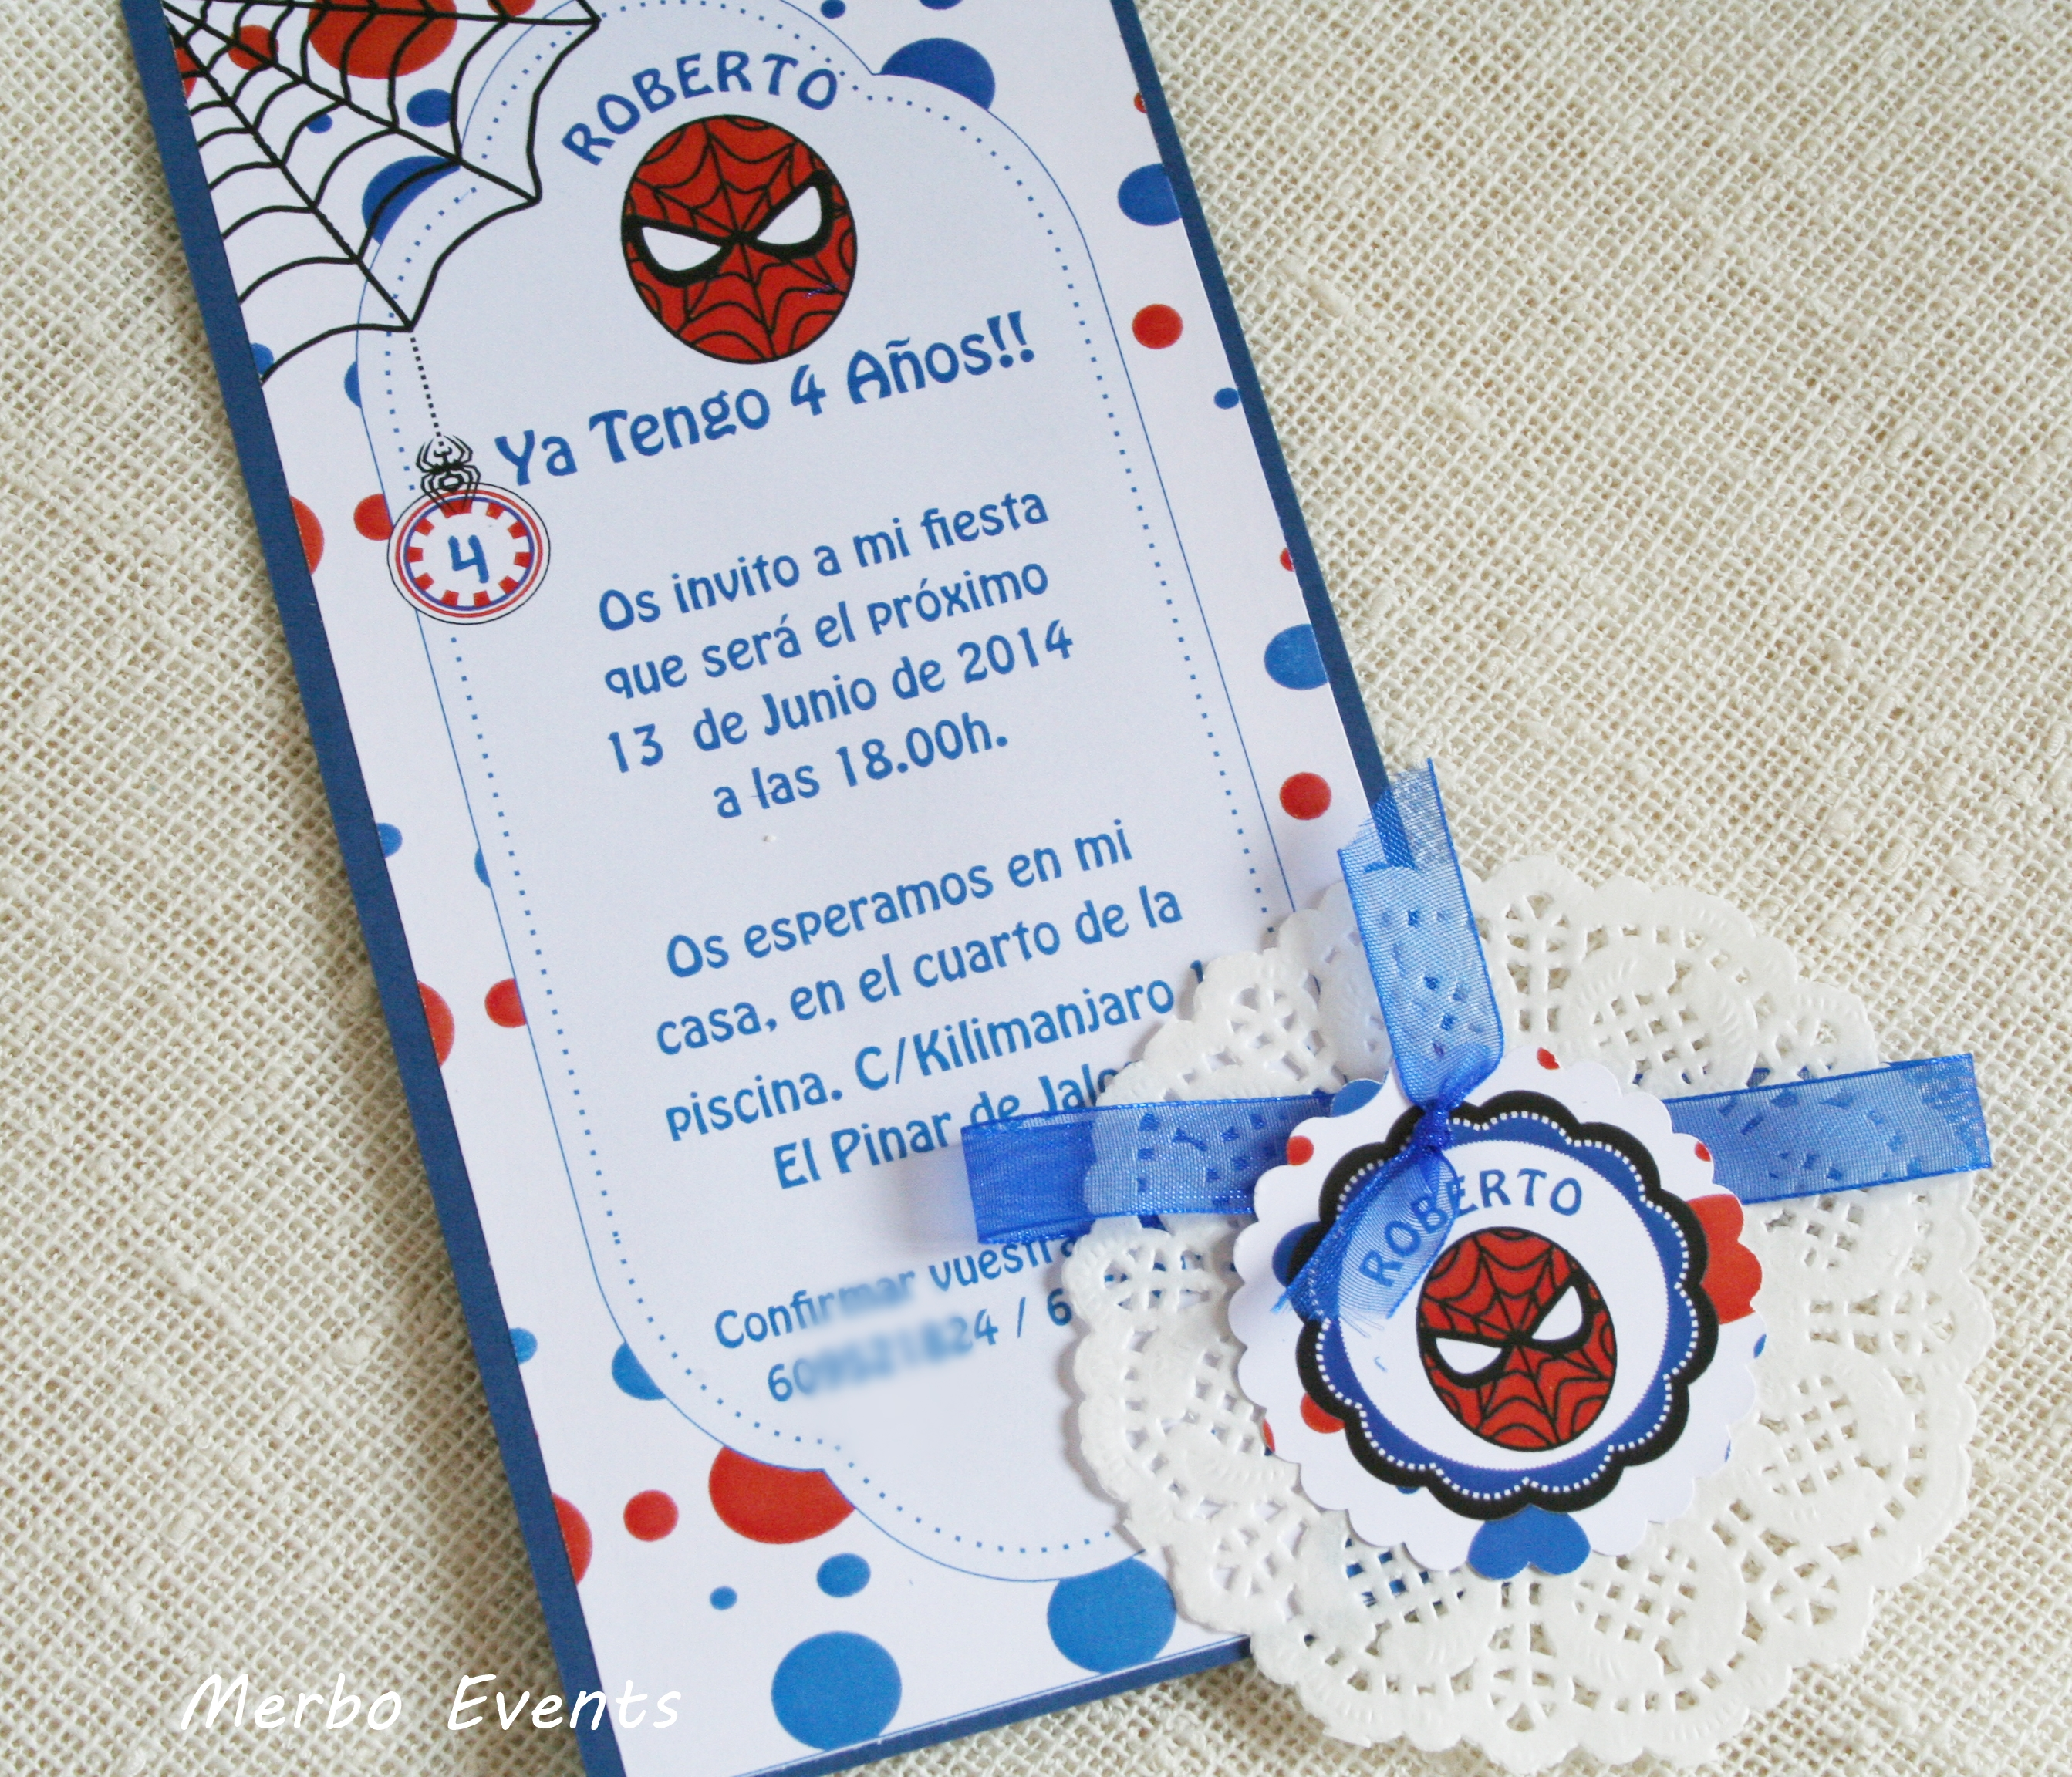 Spiderman party Merbo Events